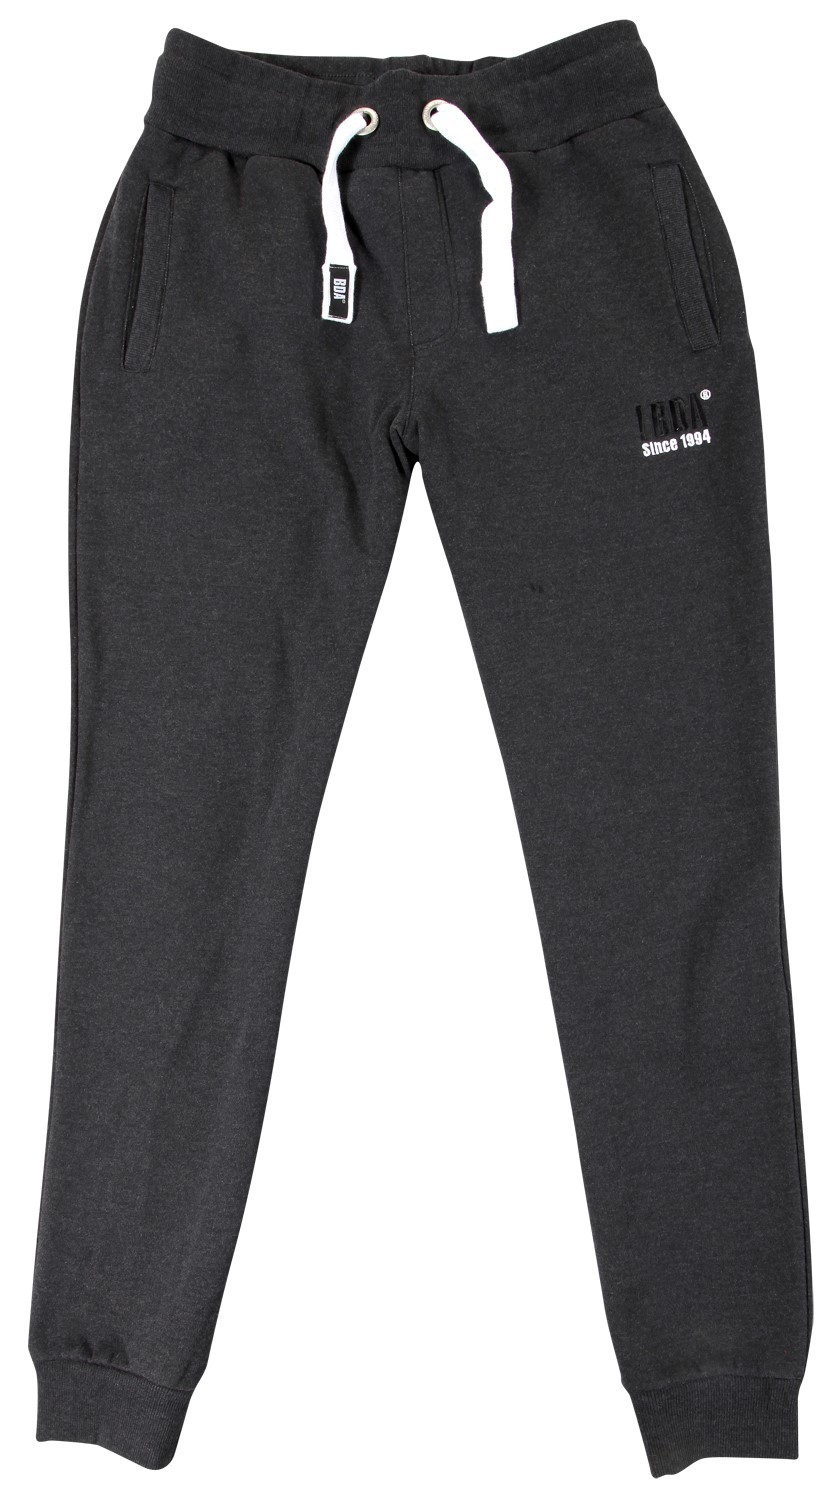 Body Action Body Action Men Sport Fleece Joggers (Black)